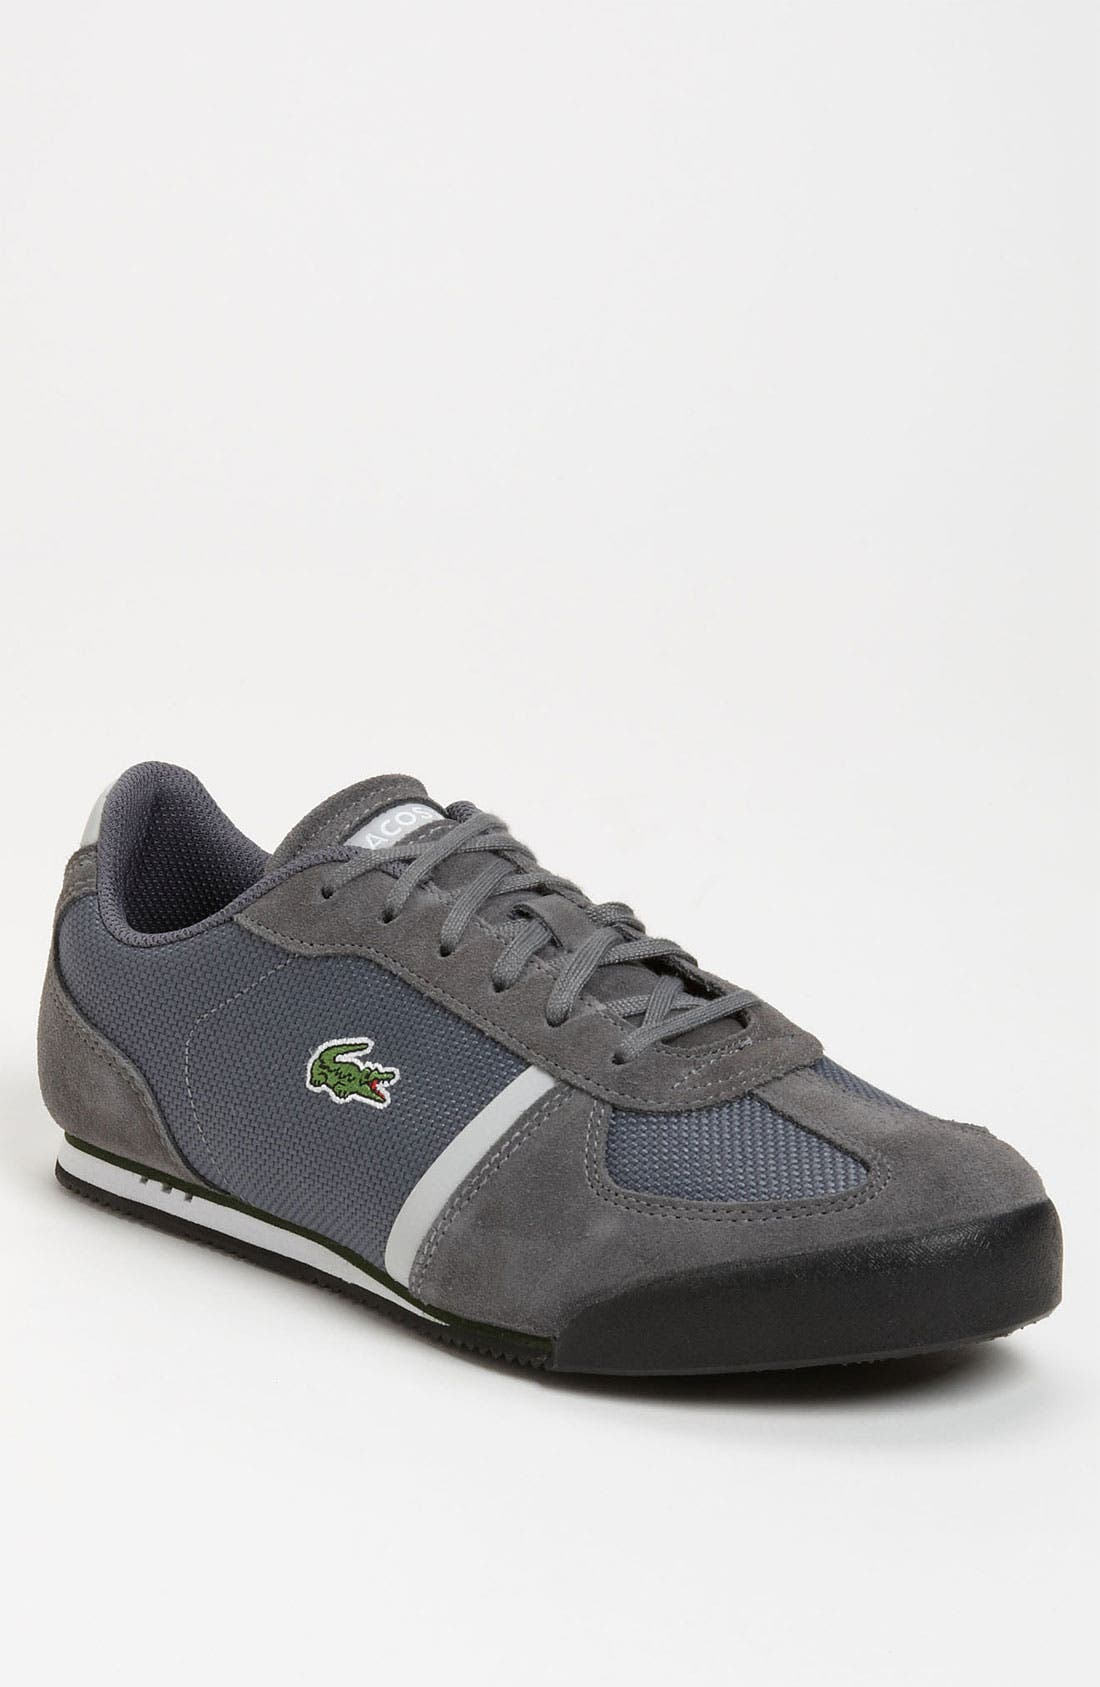 Alternate Image 1 Selected - Lacoste 'Aleron CIW' Sneaker